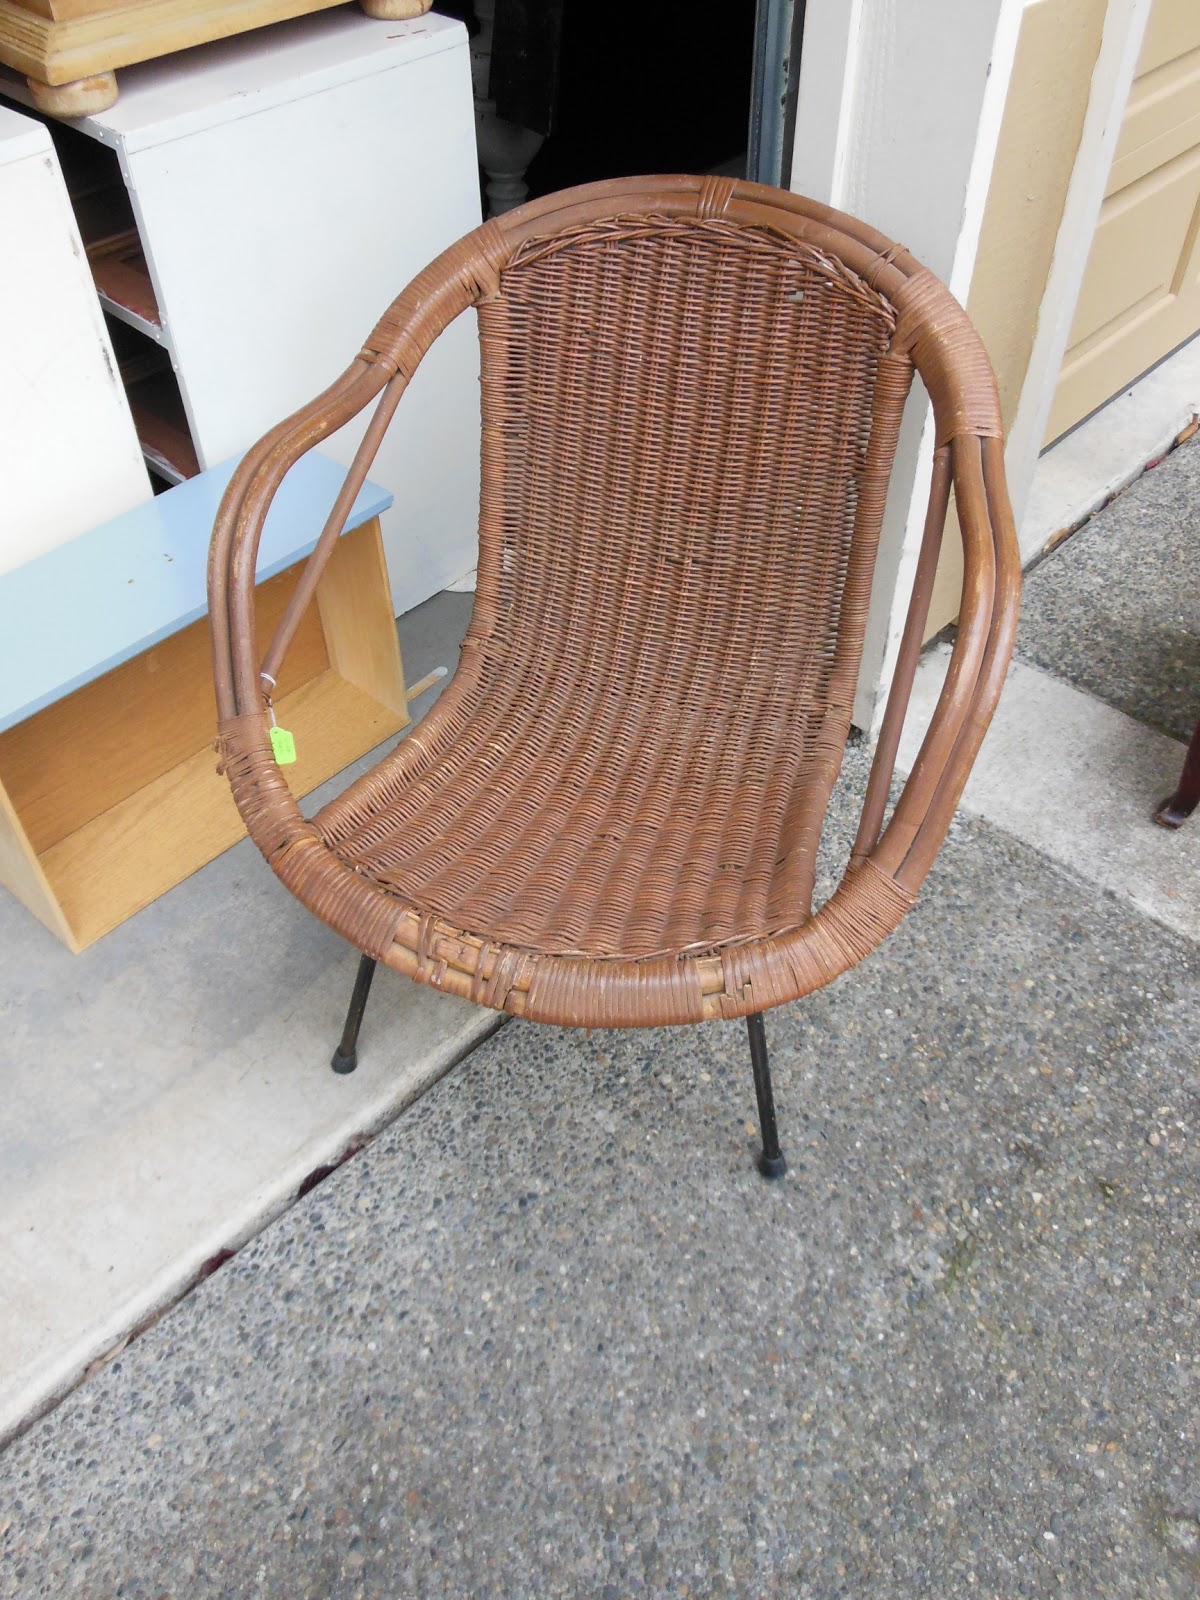 Rattan Egg Chairs Projects Projects Projects The Weathered Door